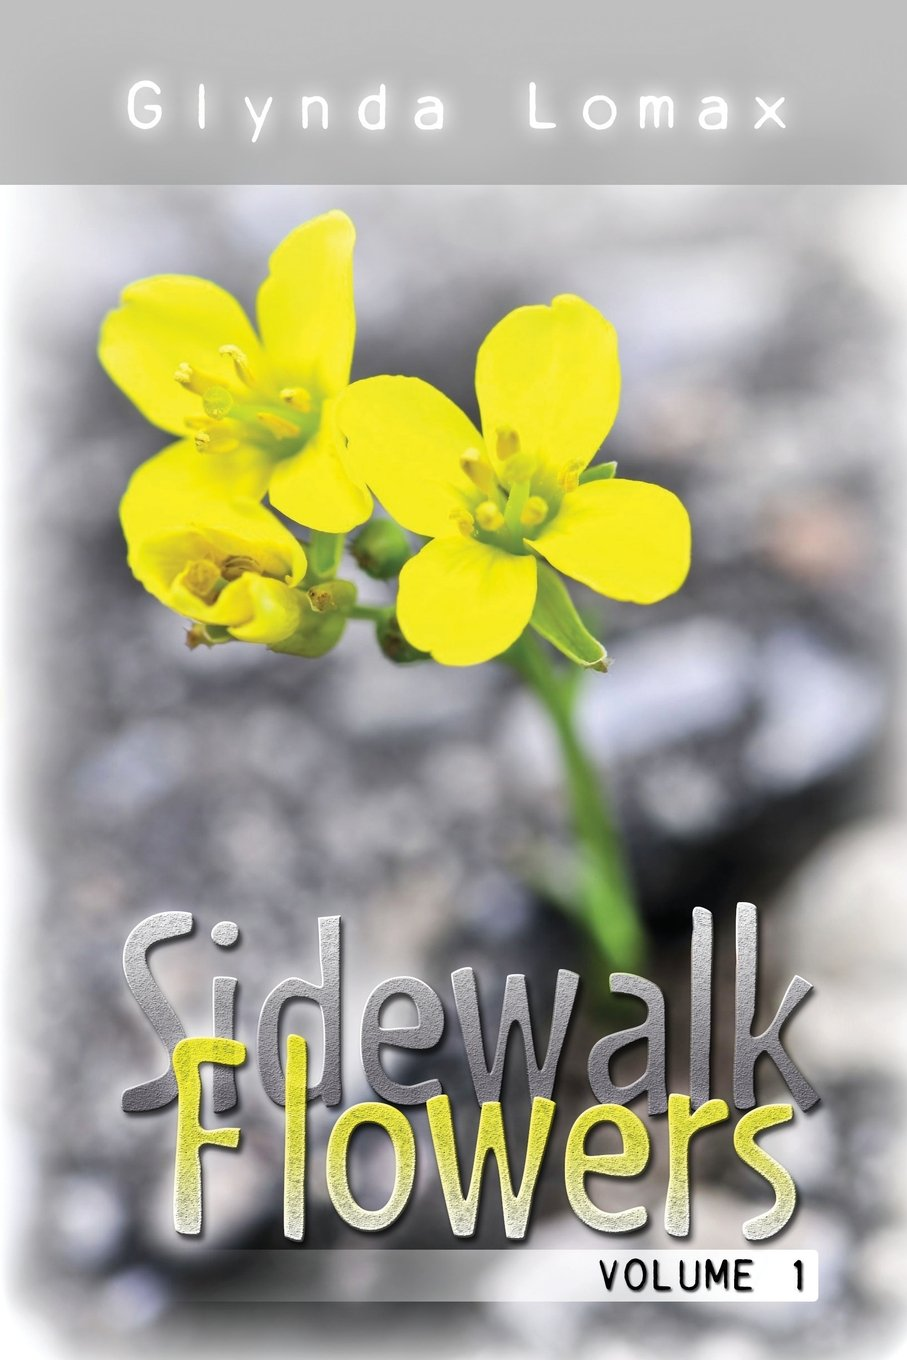 Download Sidewalk Flowers - Volume 1: Stories to Inspire, Motivate and Encourage PDF